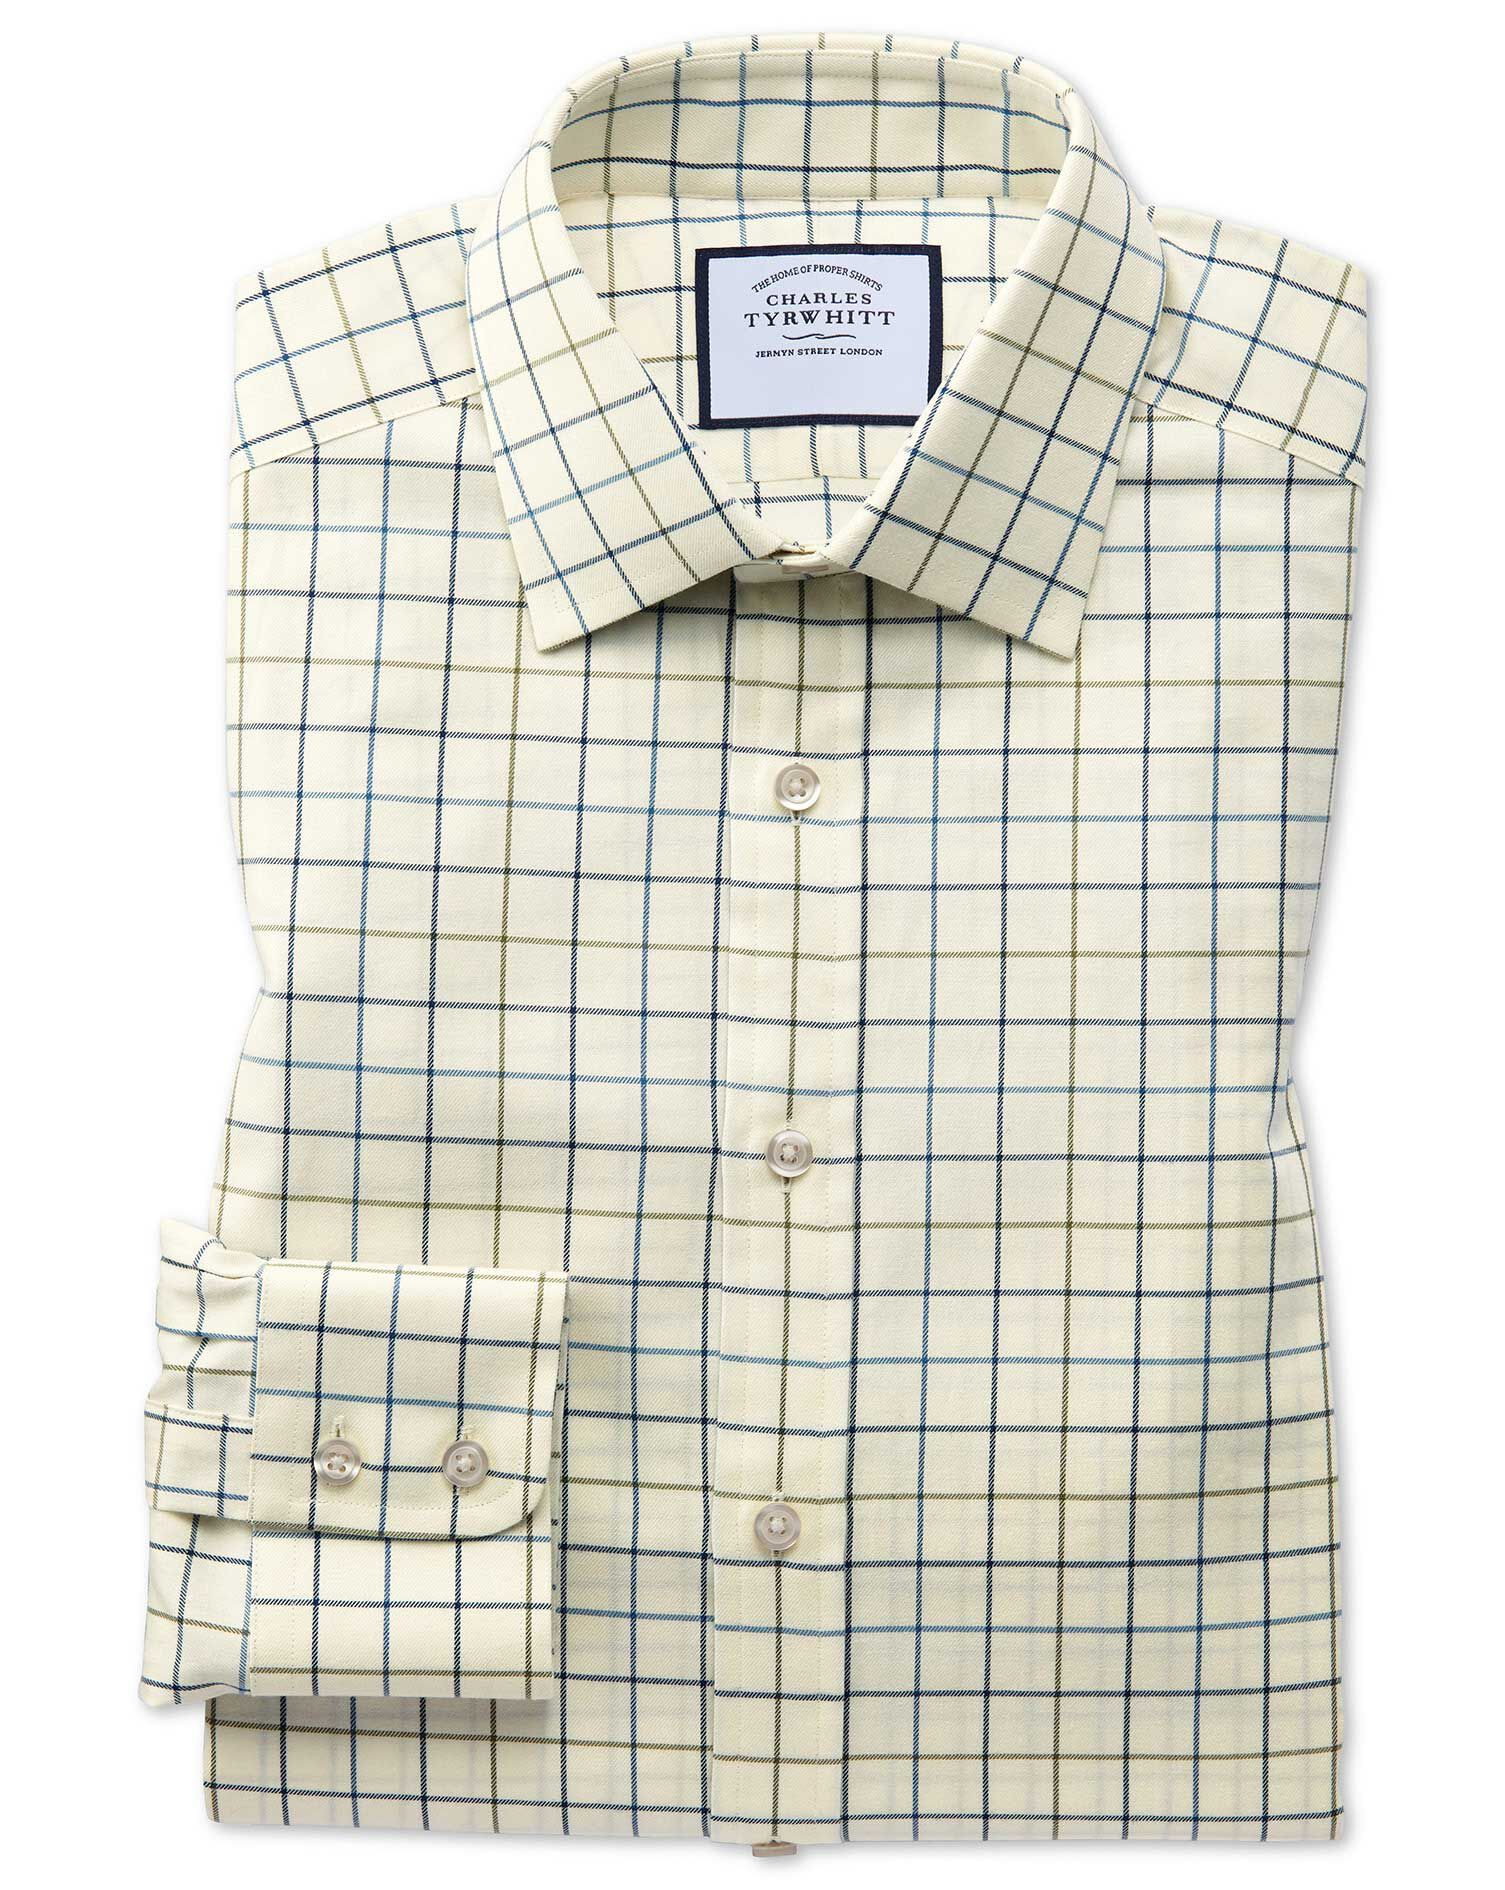 Classic Fit Navy and Green Tattersall Country Check Cotton Formal Shirt Single Cuff Size 17/35 by Ch